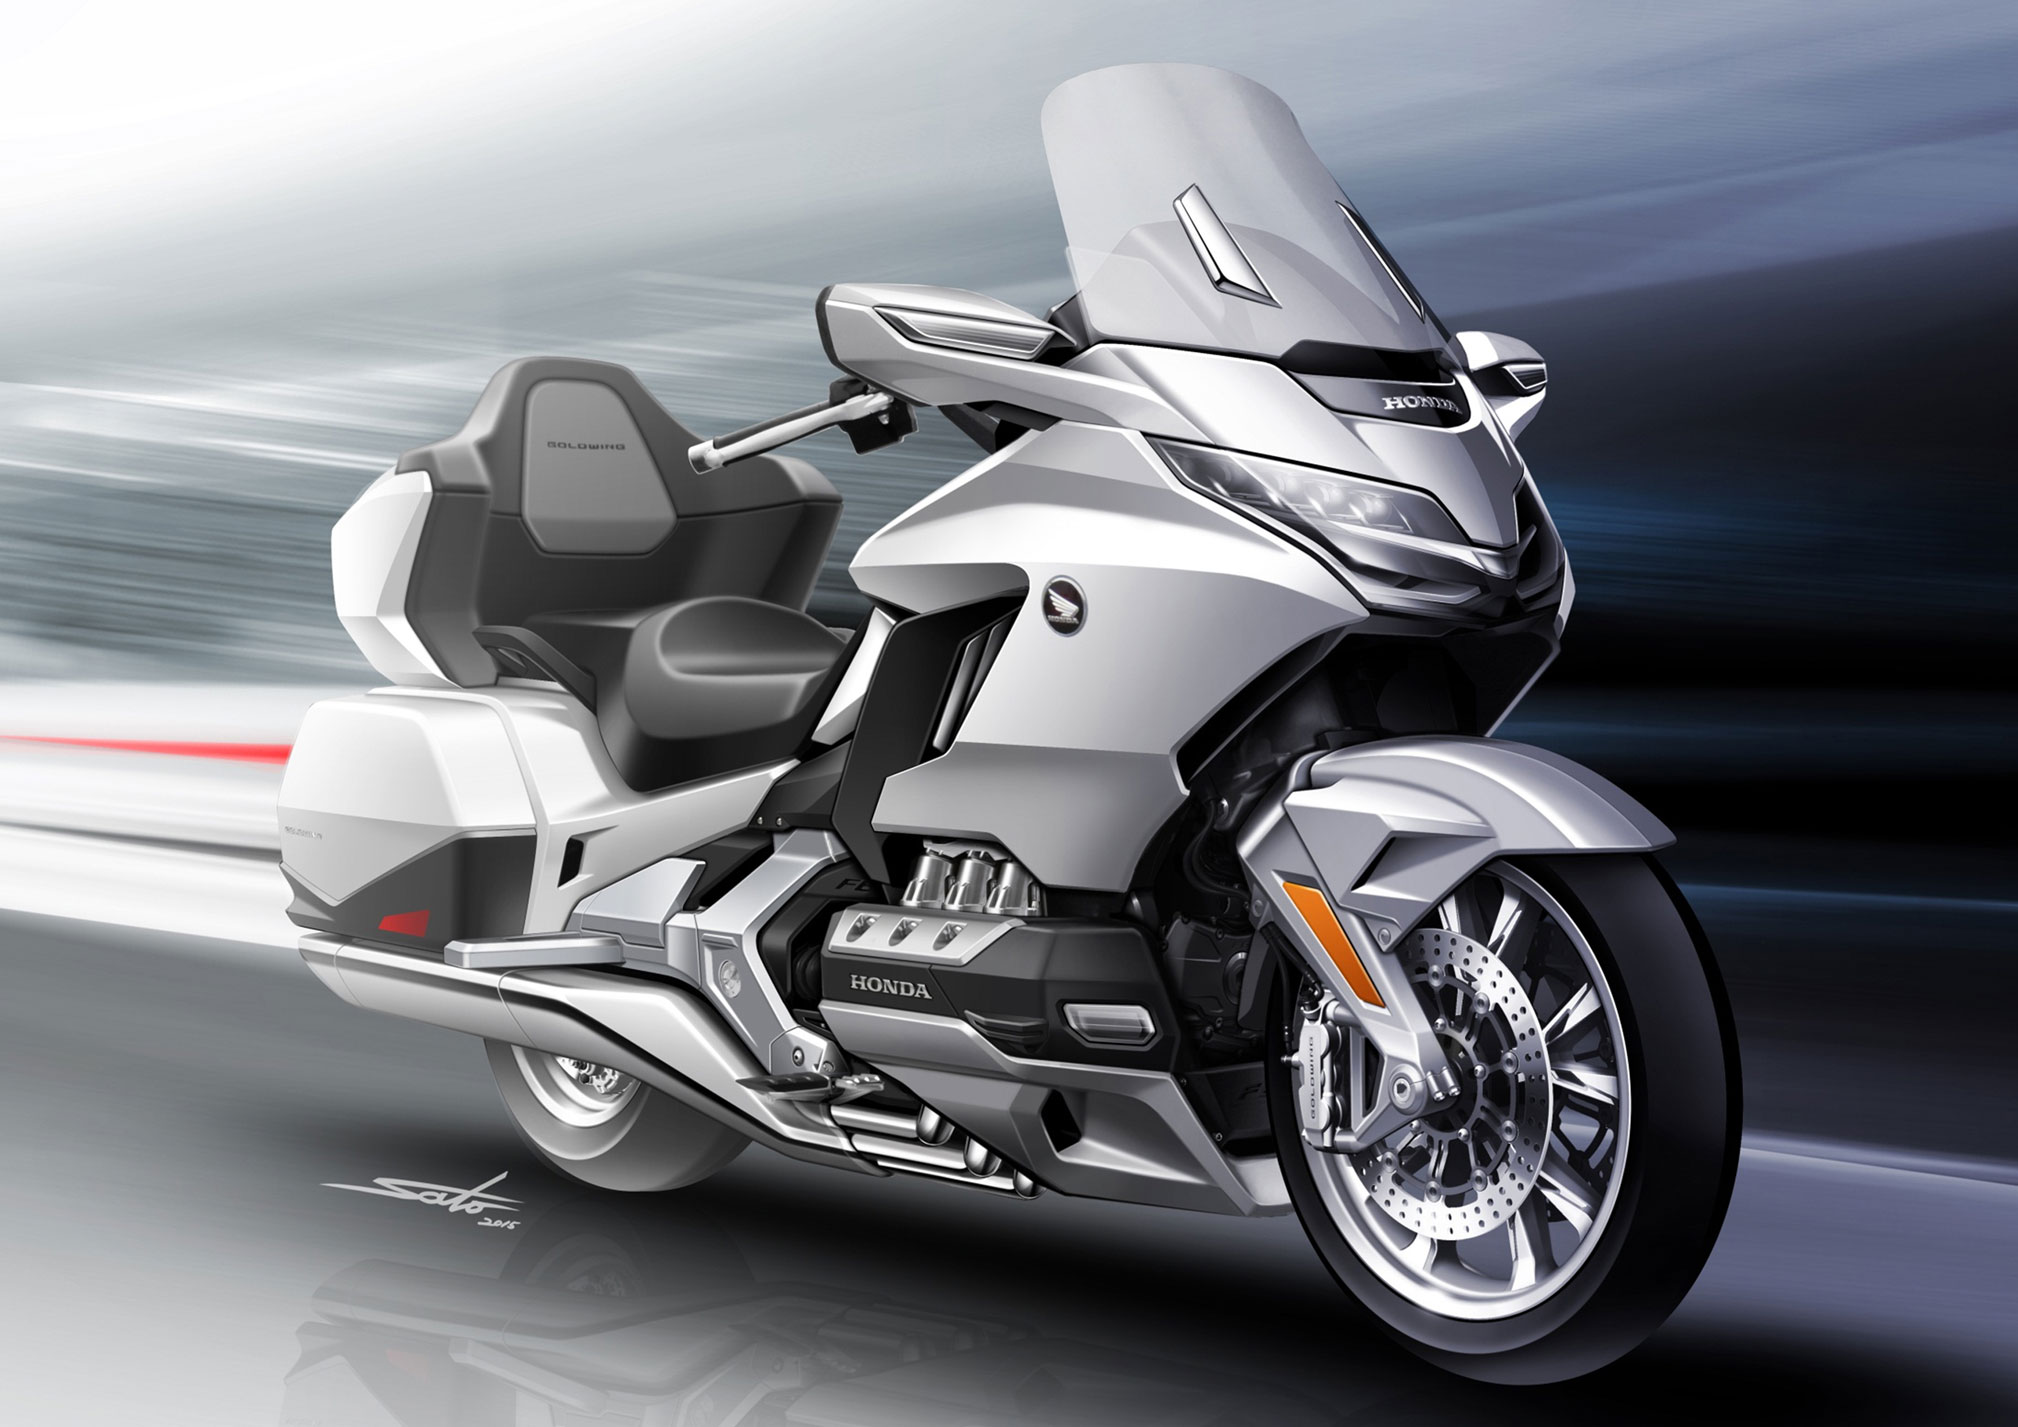 2018 honda gold wing5 totalmotorcycle. Black Bedroom Furniture Sets. Home Design Ideas